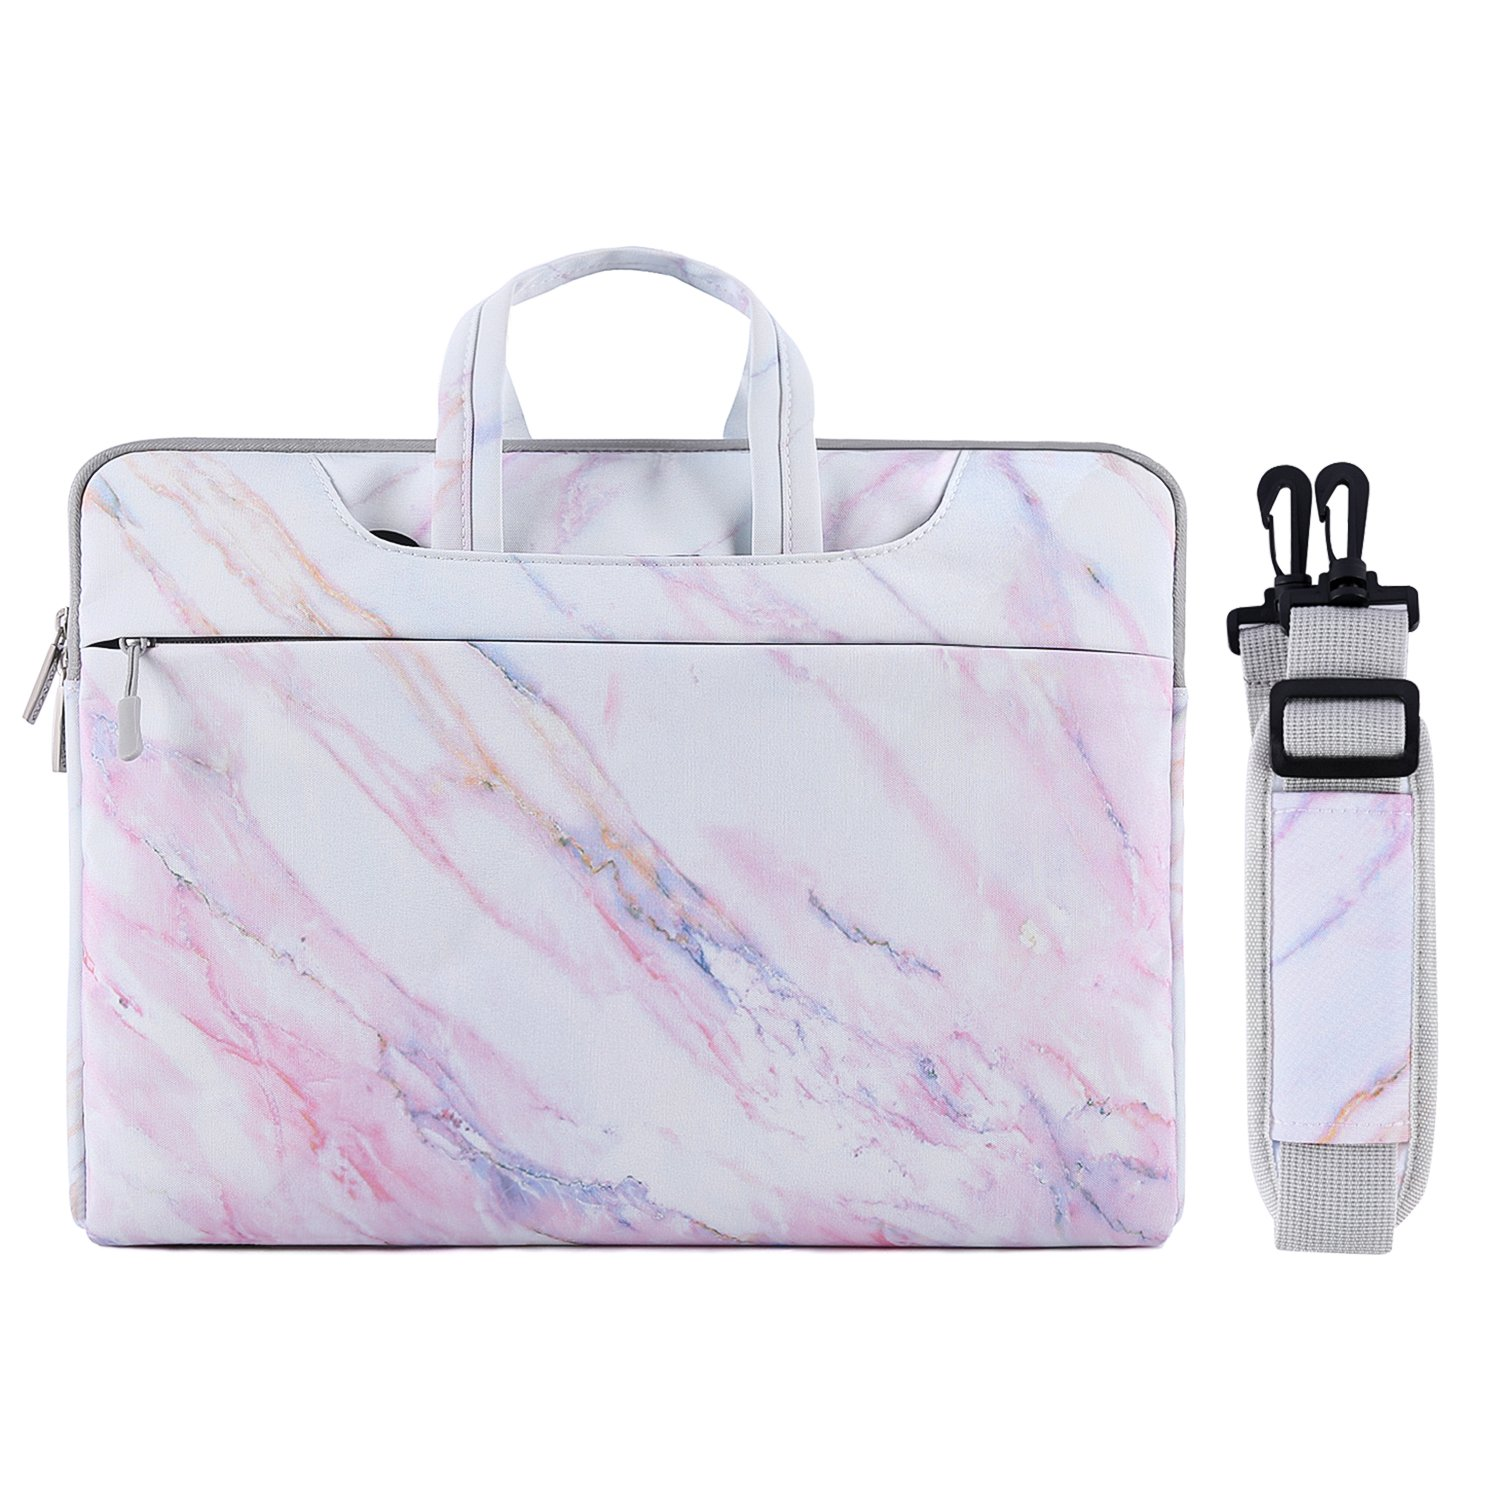 MOSISO Laptop Shoulder Compatible 15 Inch MacBook Pro Touch Bar A1990 A1707 2018 2017 2016, 14 Inch ThinkPad Chromebook, Canvas Marble Pattern Briefcase Sleeve Tablet Bag Case Cover, Pink